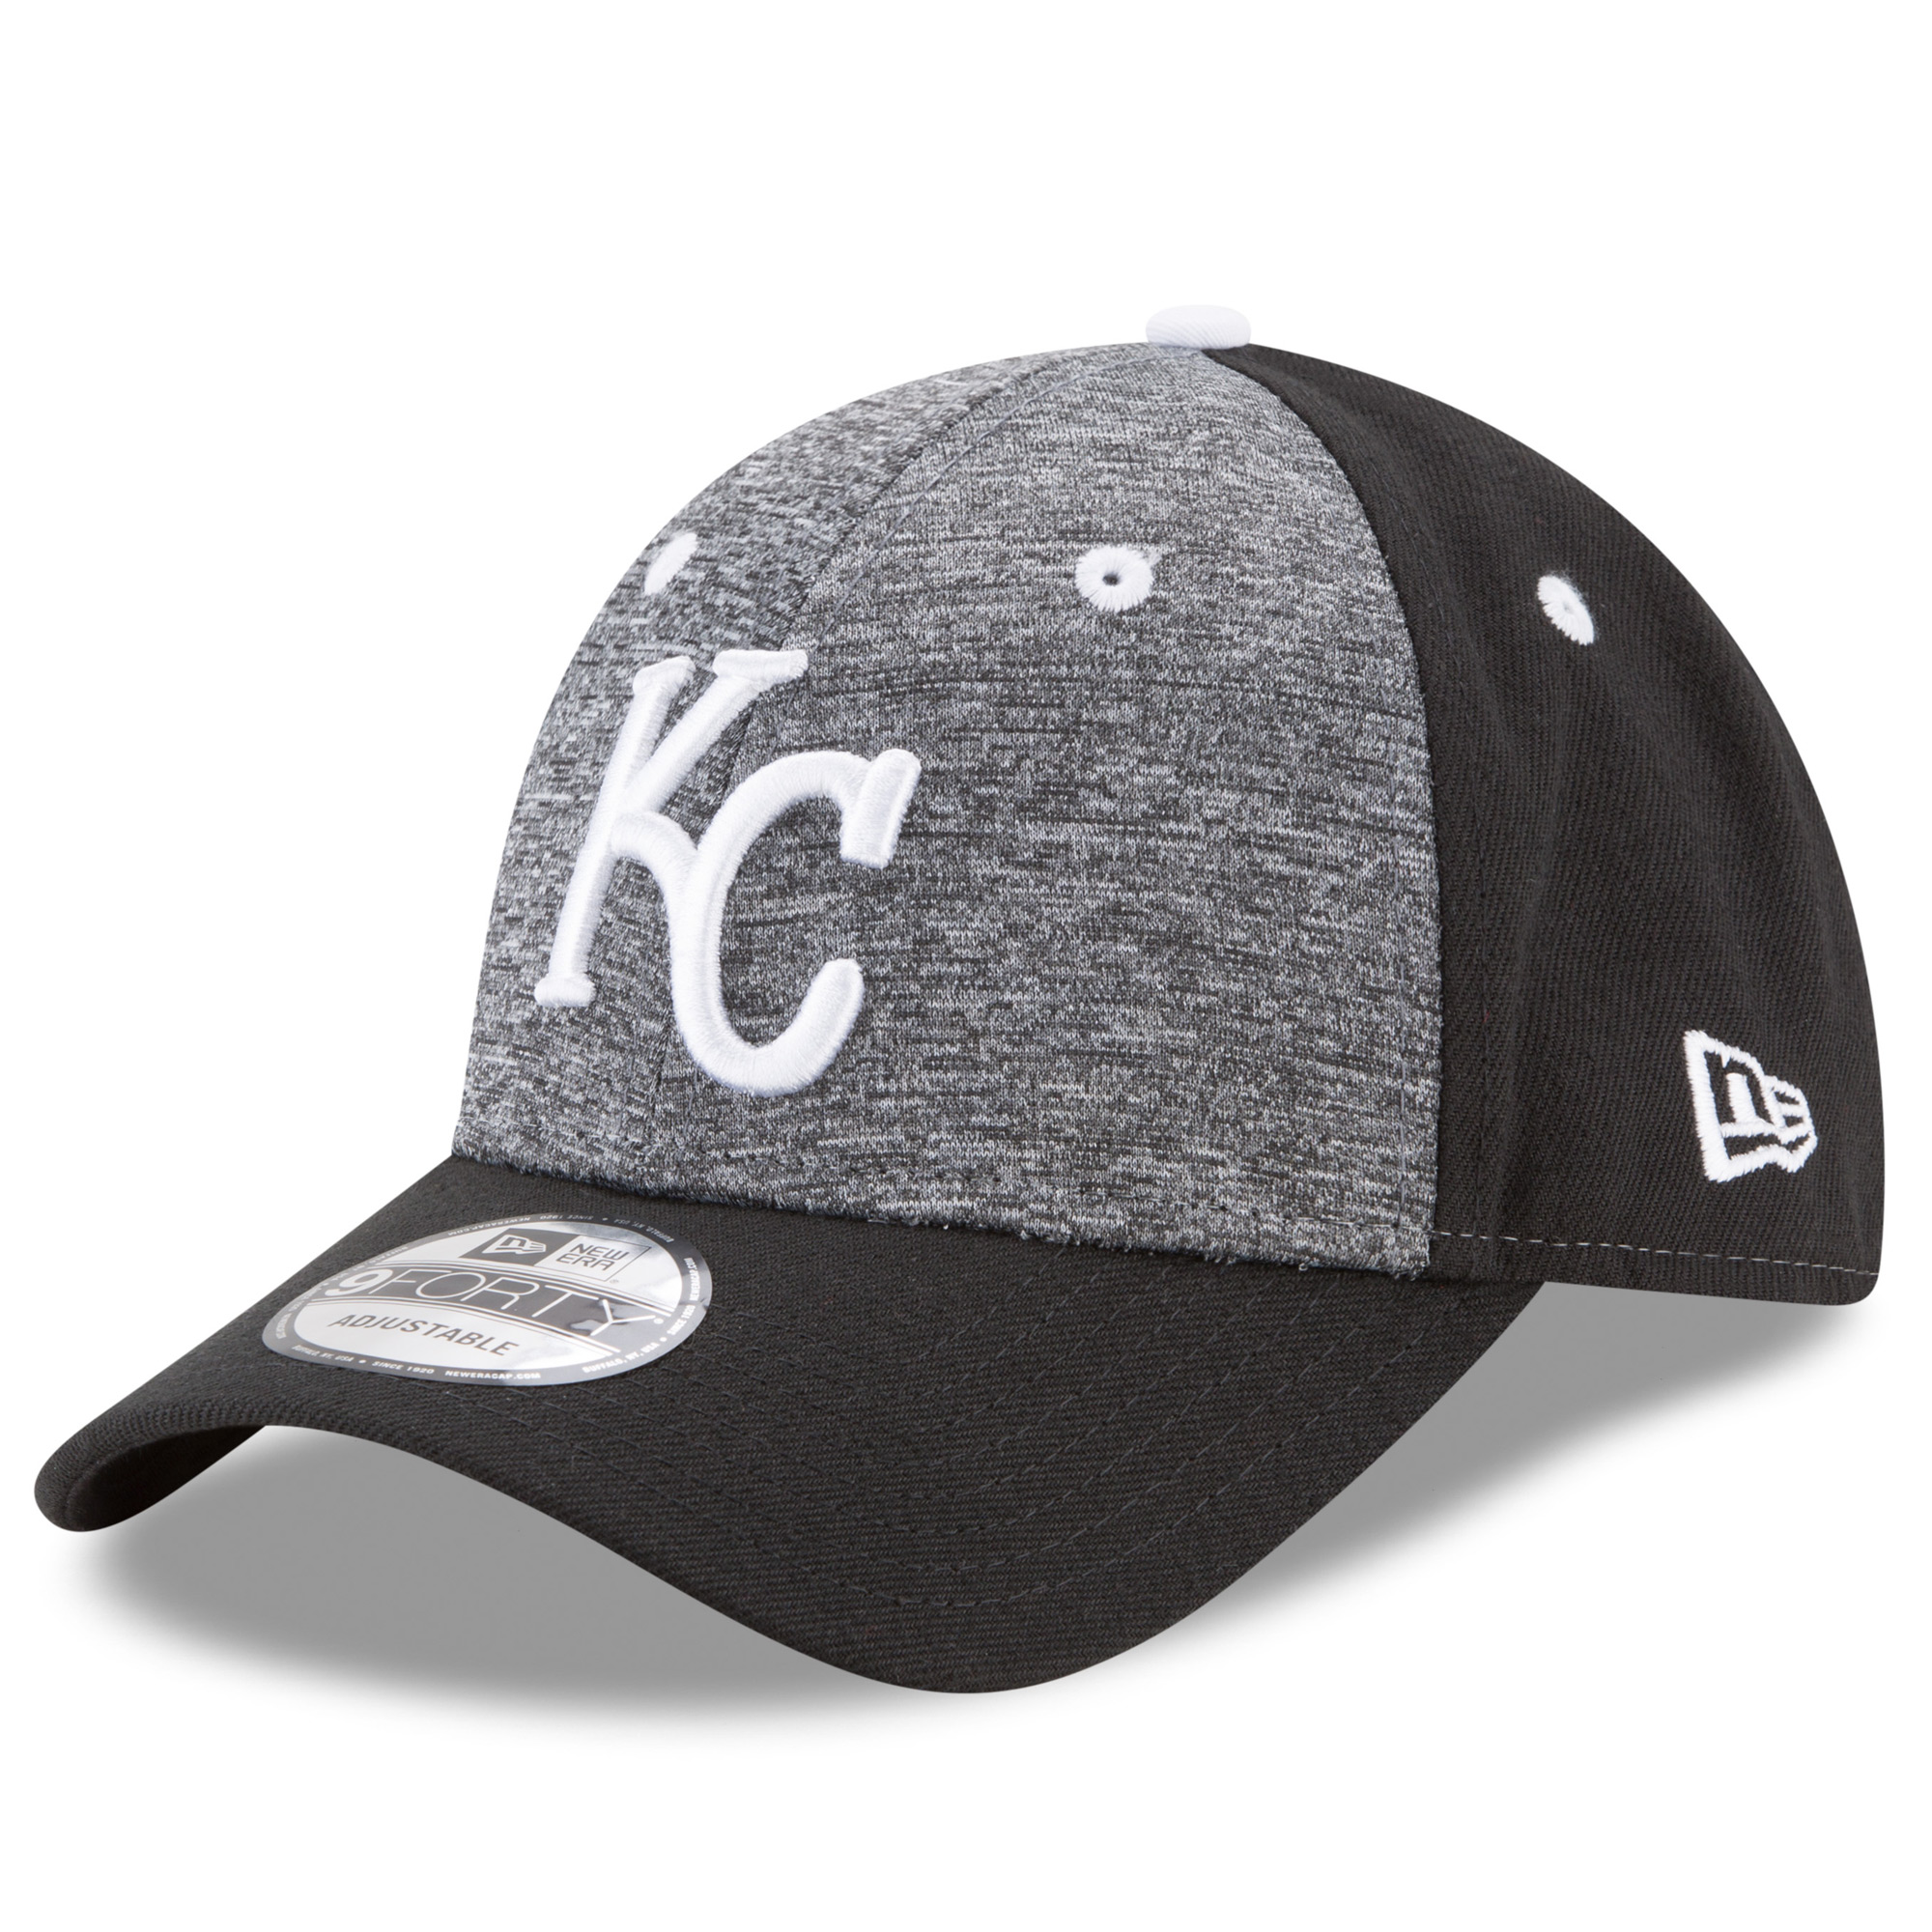 Kansas City Royals New Era The League Shadow 2 9FORTY Adjustable Hat - Heathered Gray/Black - OSFA